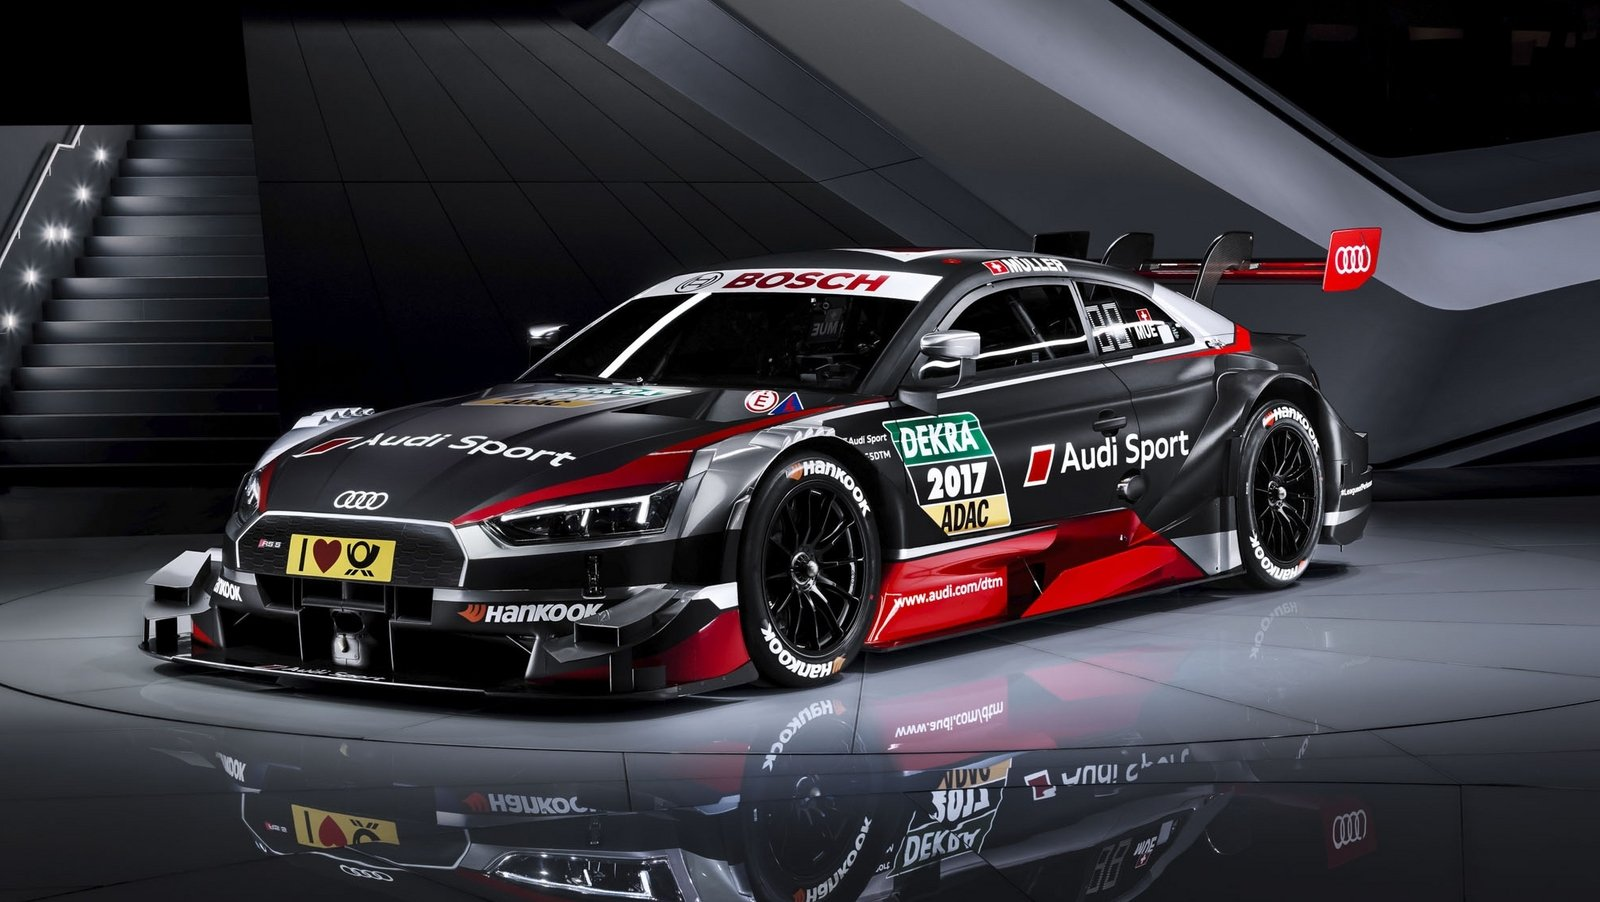 Audi Q5 Sport >> The Audi RS 5 DTM Looks Ready To Take On Any Competition Pictures, Photos, Wallpapers. | Top Speed